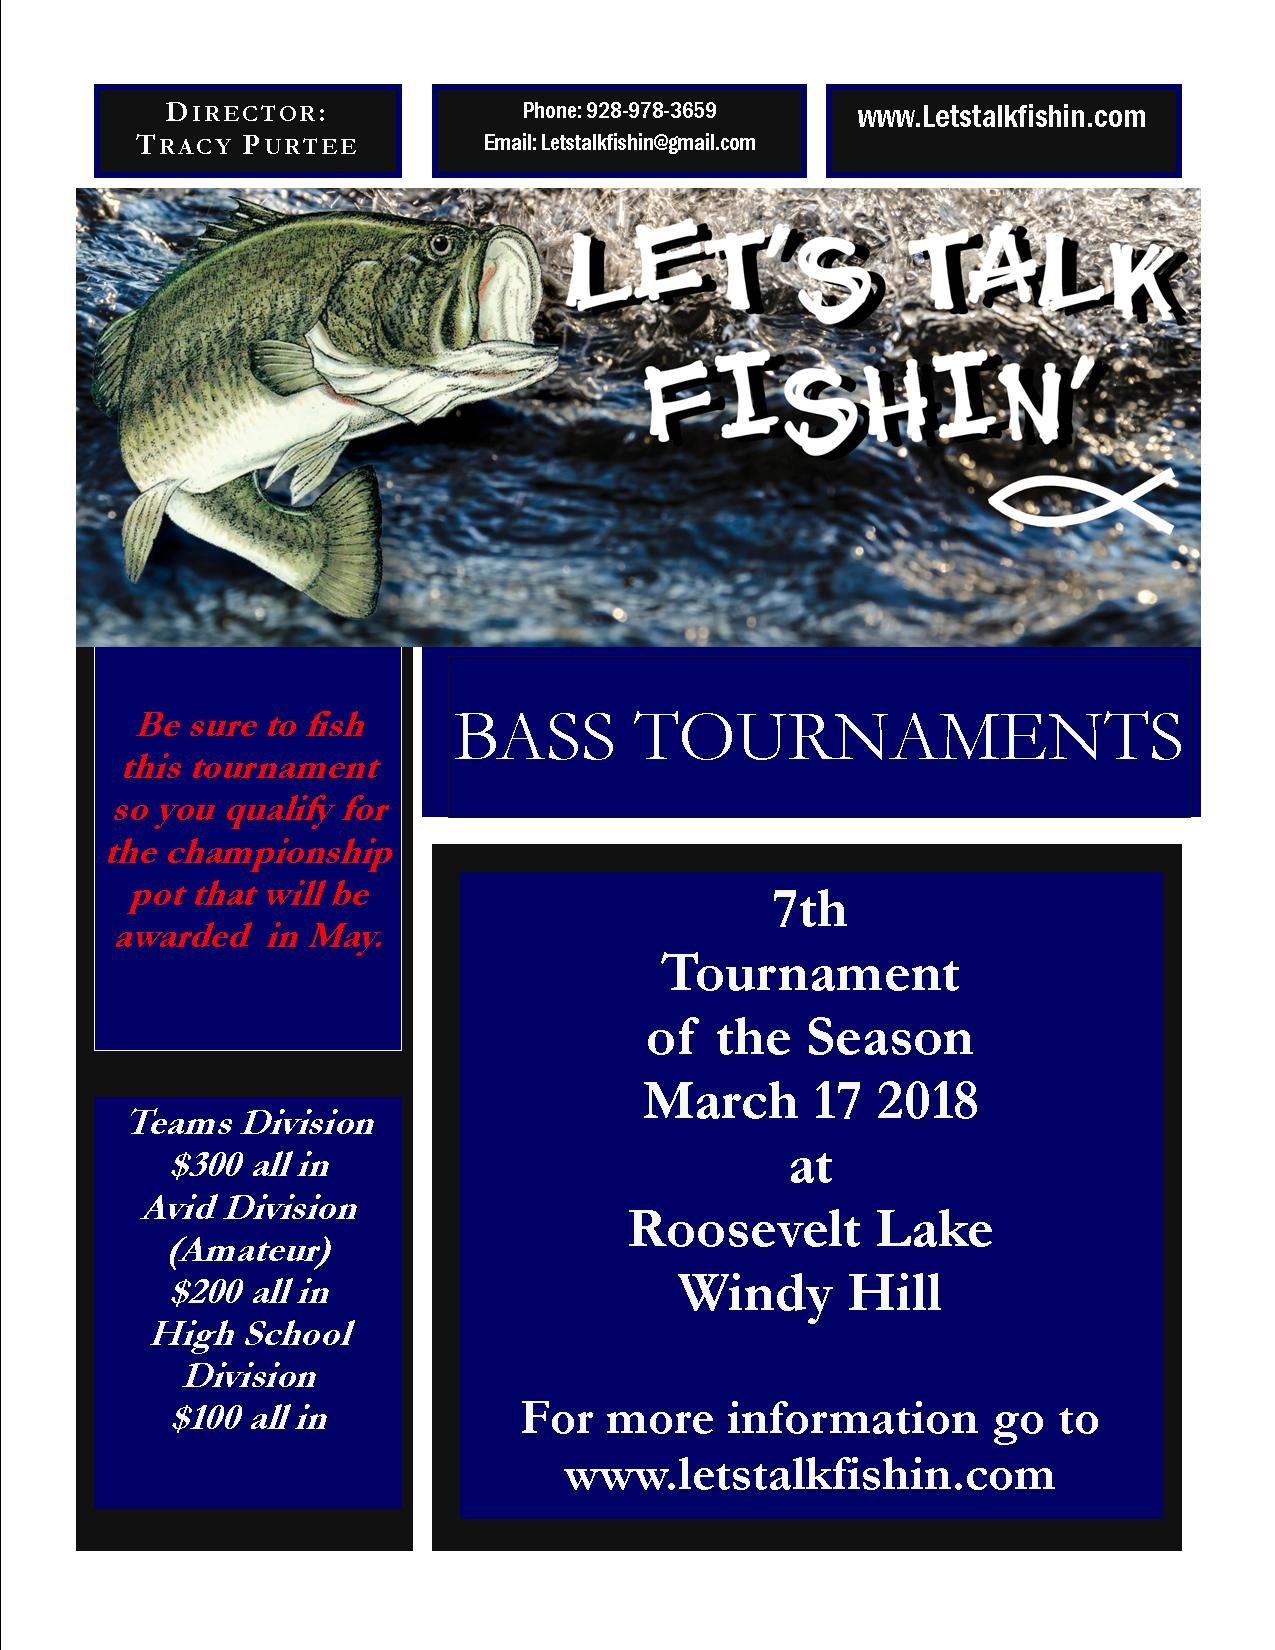 Click image for larger version  Name:7th Tournament.jpg Views:2186 Size:283.6 KB ID:96826